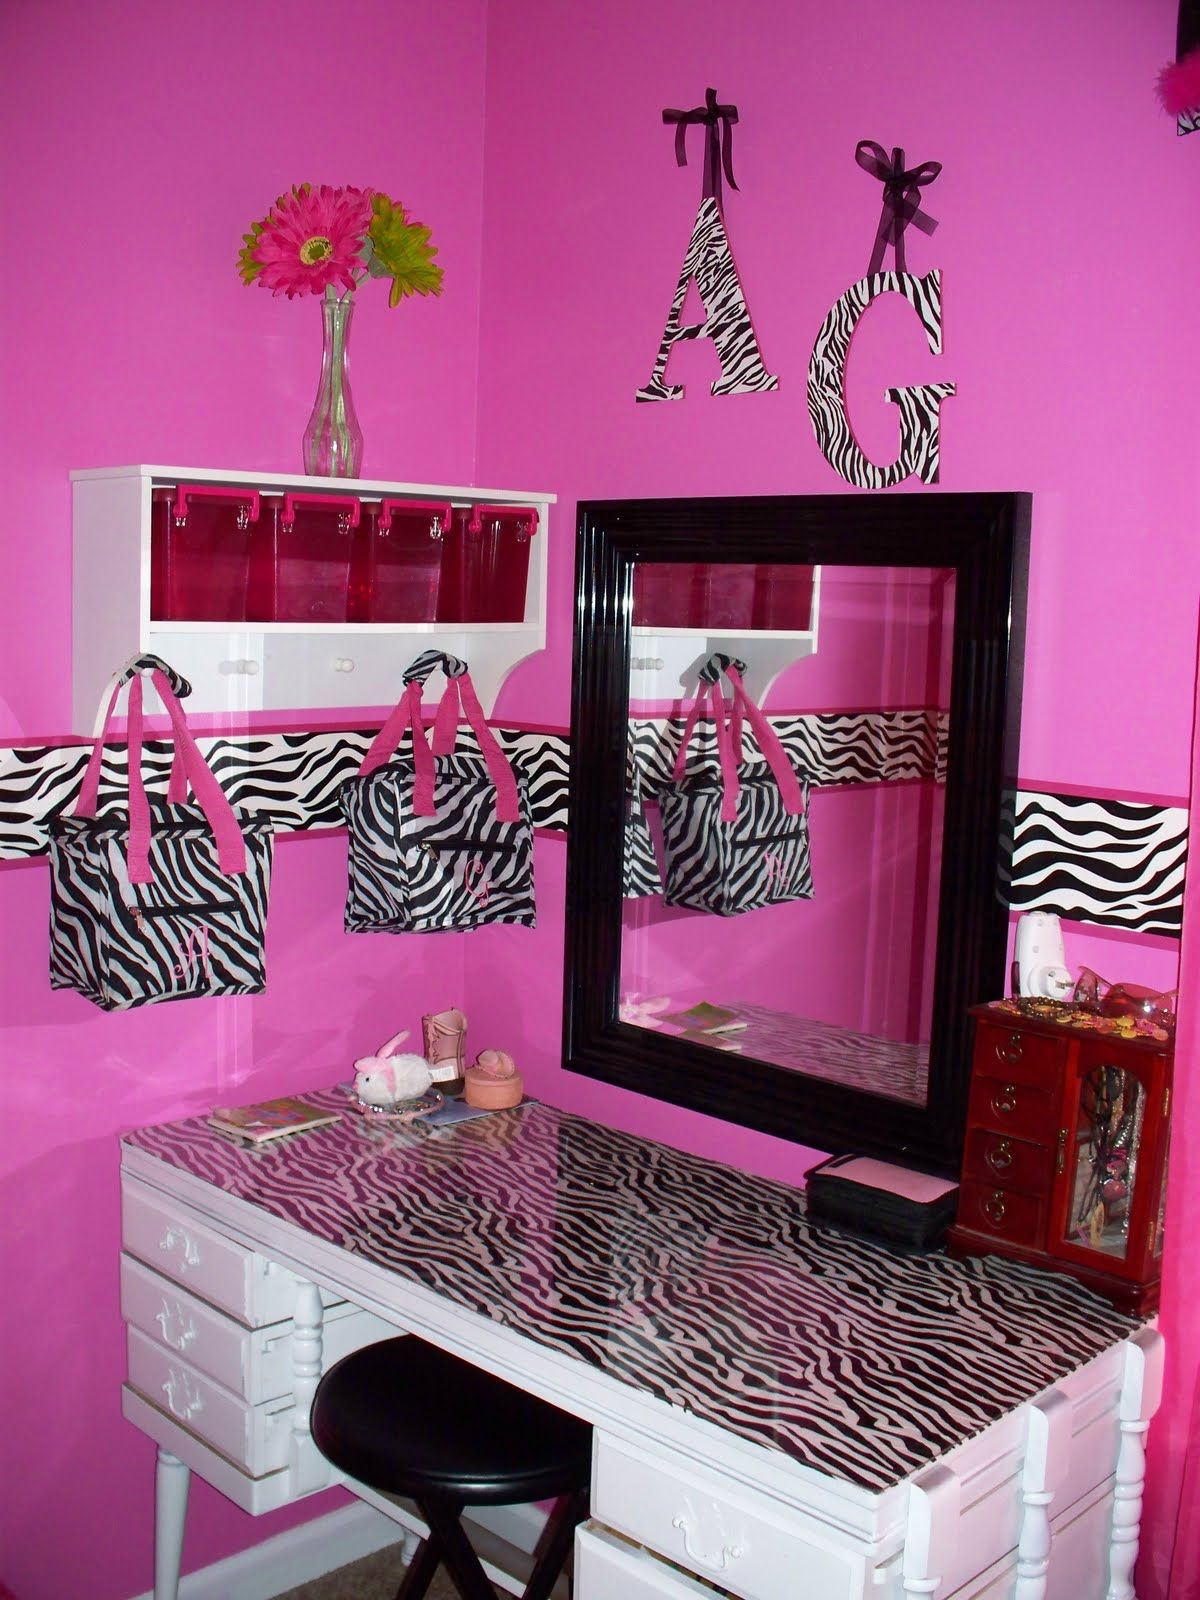 Pink bedroom curtain design - Mommy Lou Who Hot Pink Zebra Room Zebra Print Bedroom Curtains Children S